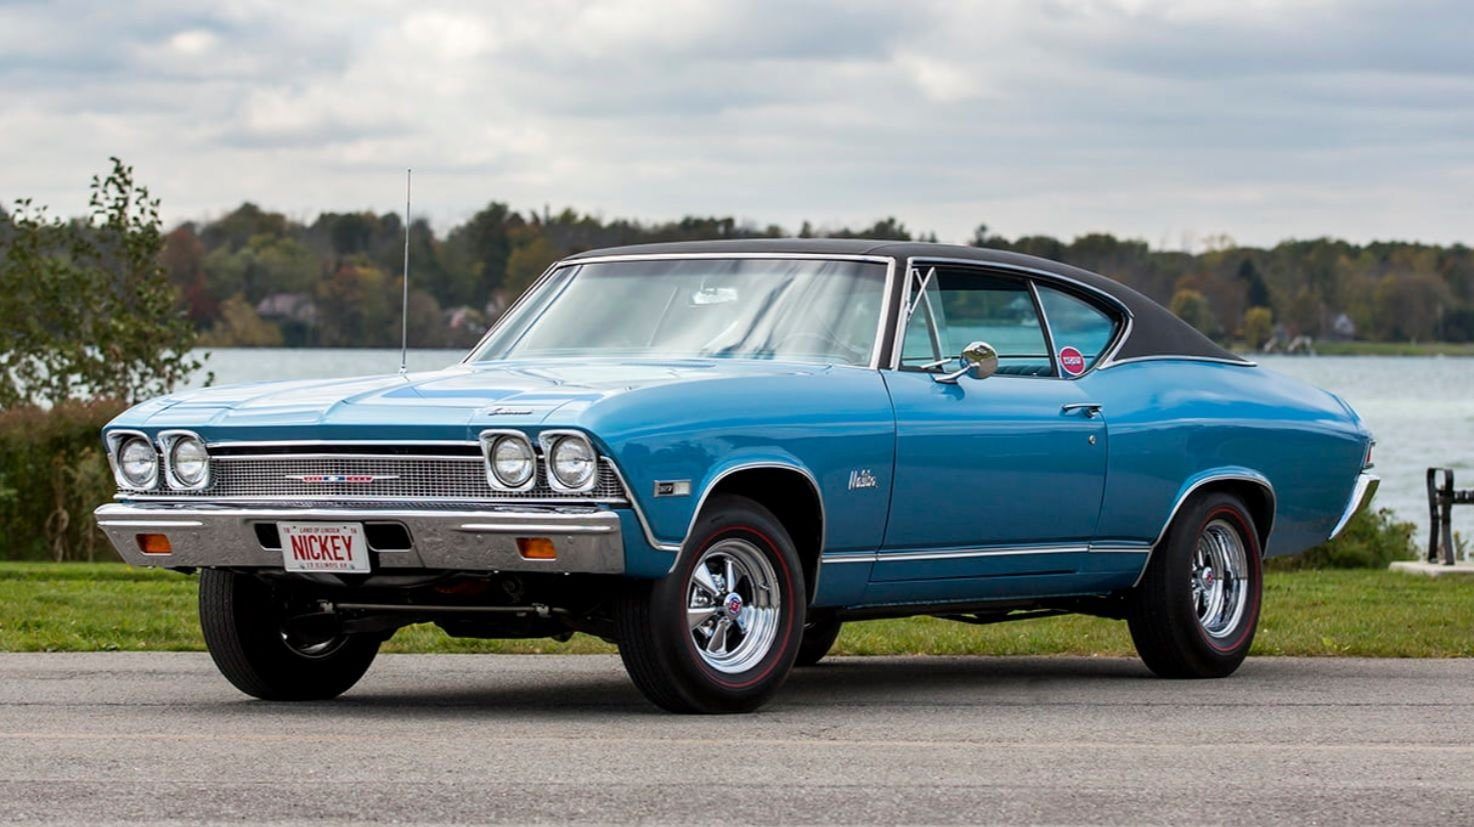 1968 chevrolet chevelle nickey sport coupe